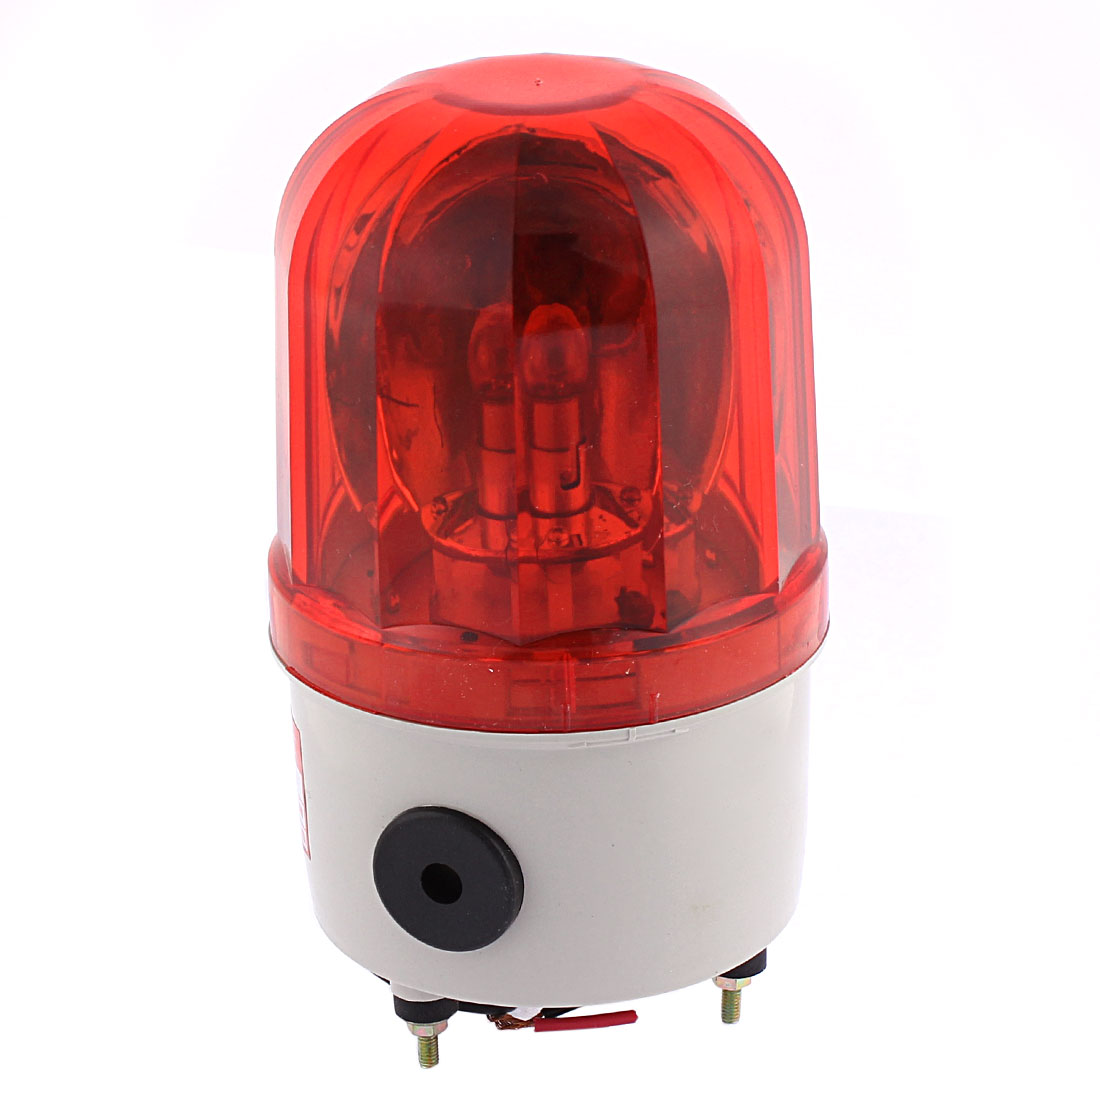 DC 24V 10W Plastic Shell LED Flash Strobe Industrial Signal Alarm Security Warning Lamp Red